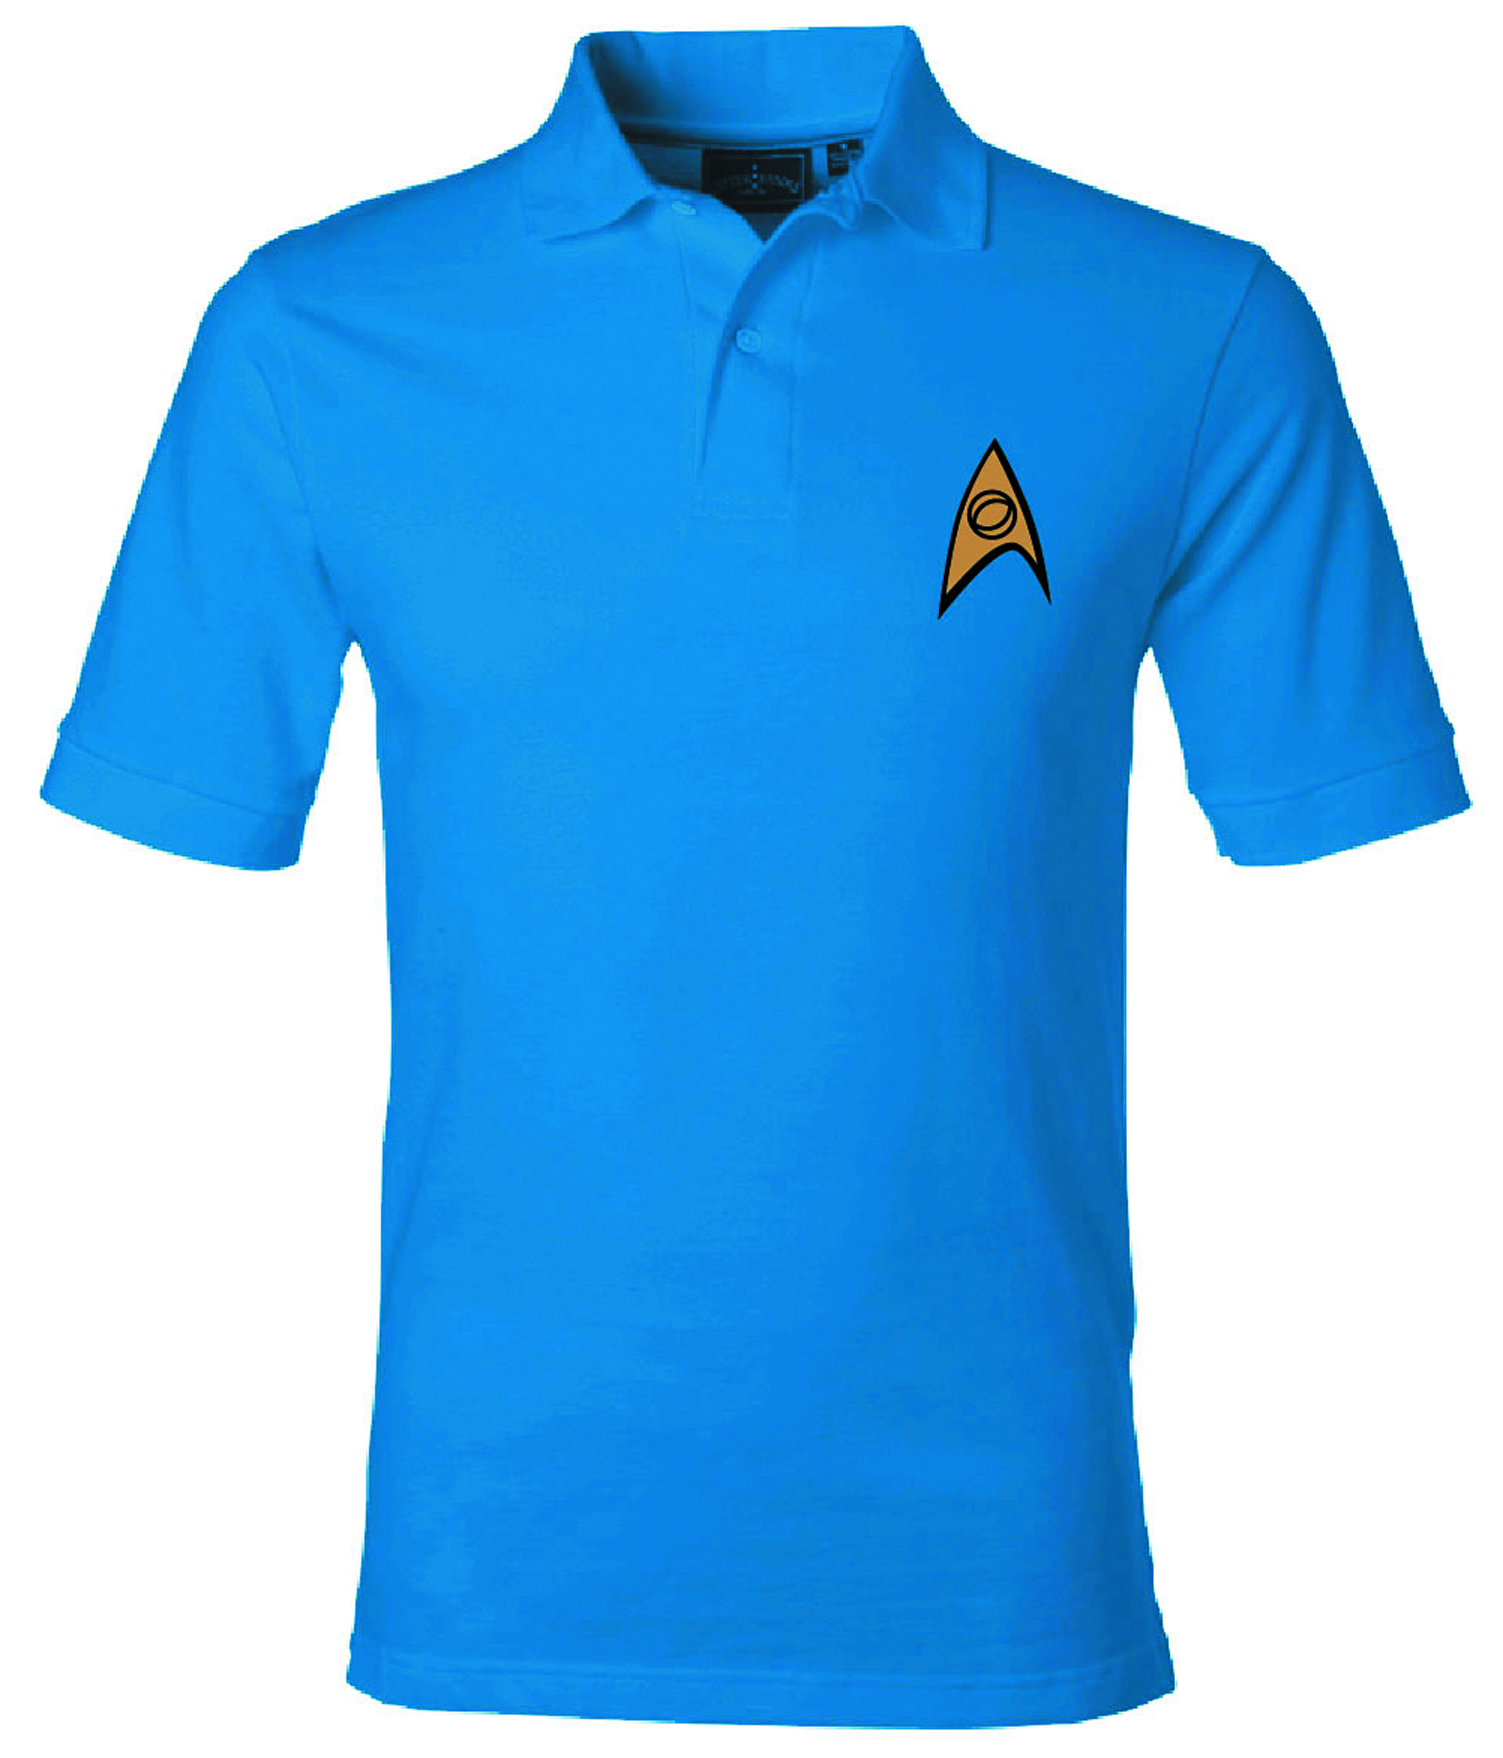 ST STARFLEET SCIENCE SYMBOL BLUE POLO XXL